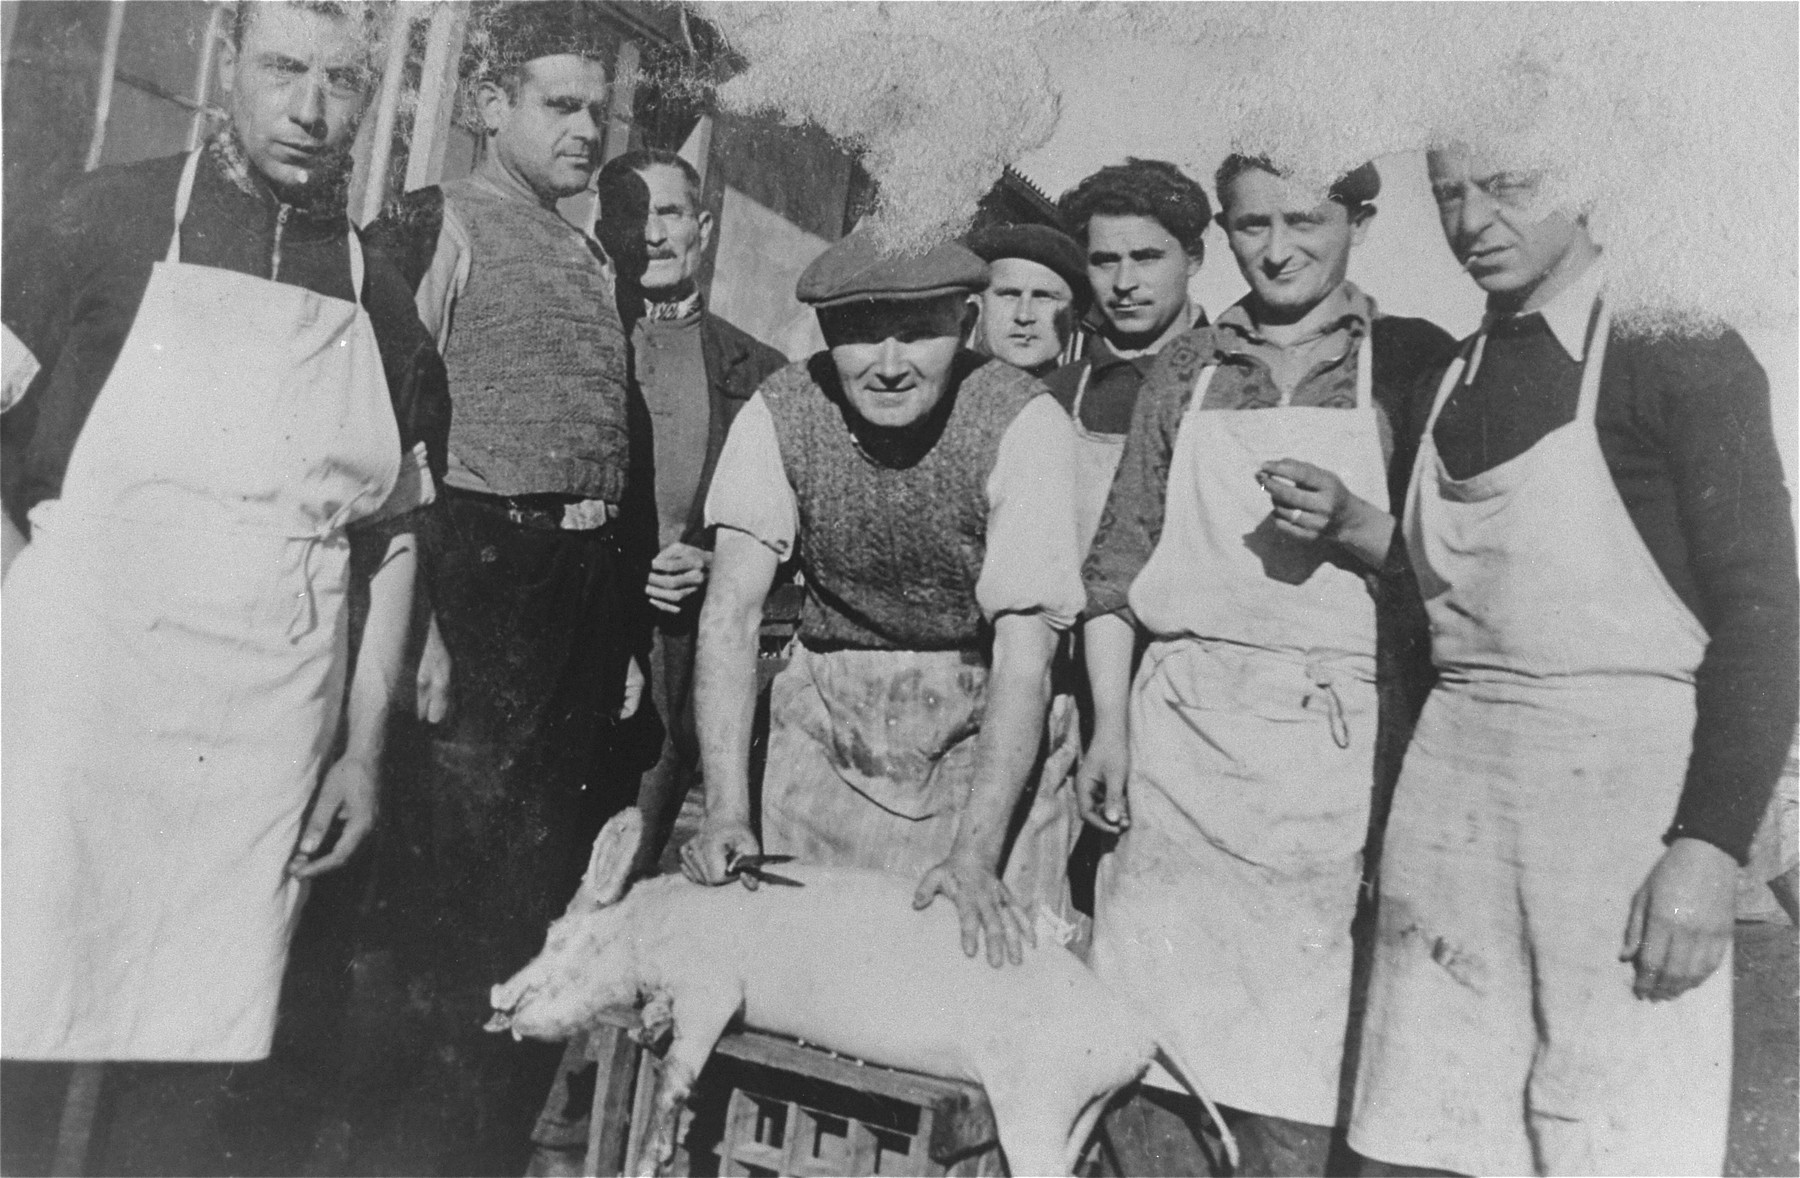 A group of kitchen workers in the Gurs concentration camp pose with a slaughtered pig.  Siegfried Lindheimer is pictured in the center behind the pig.